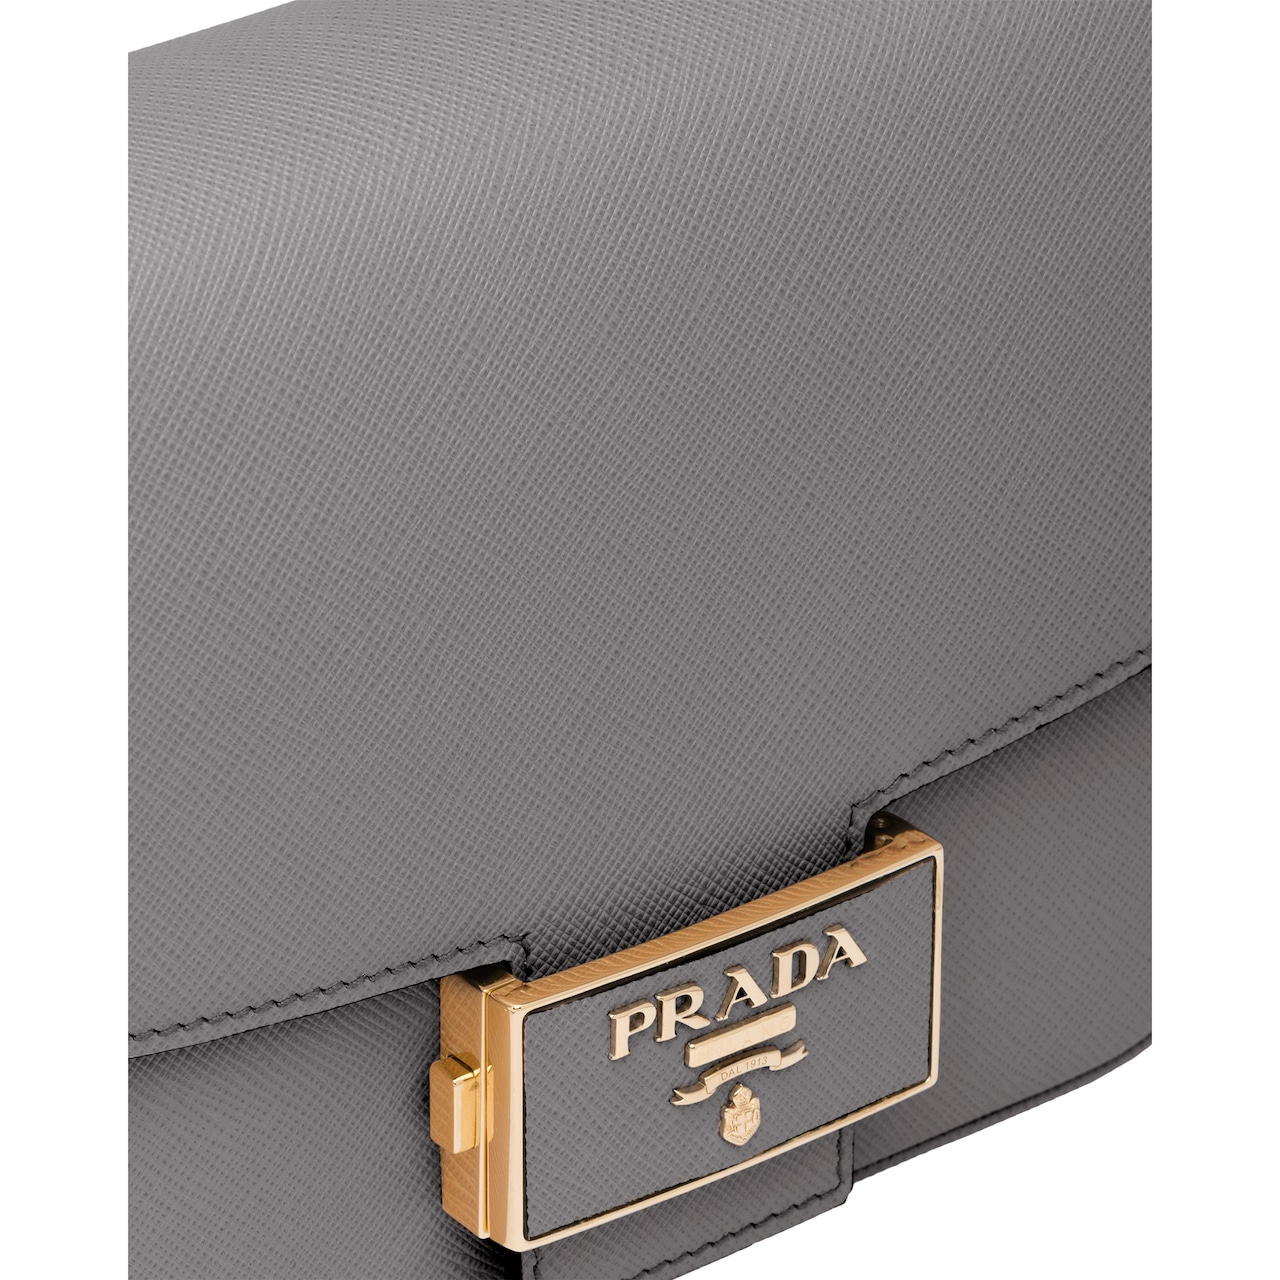 Prada Prada Emblème Saffiano leather bag 6